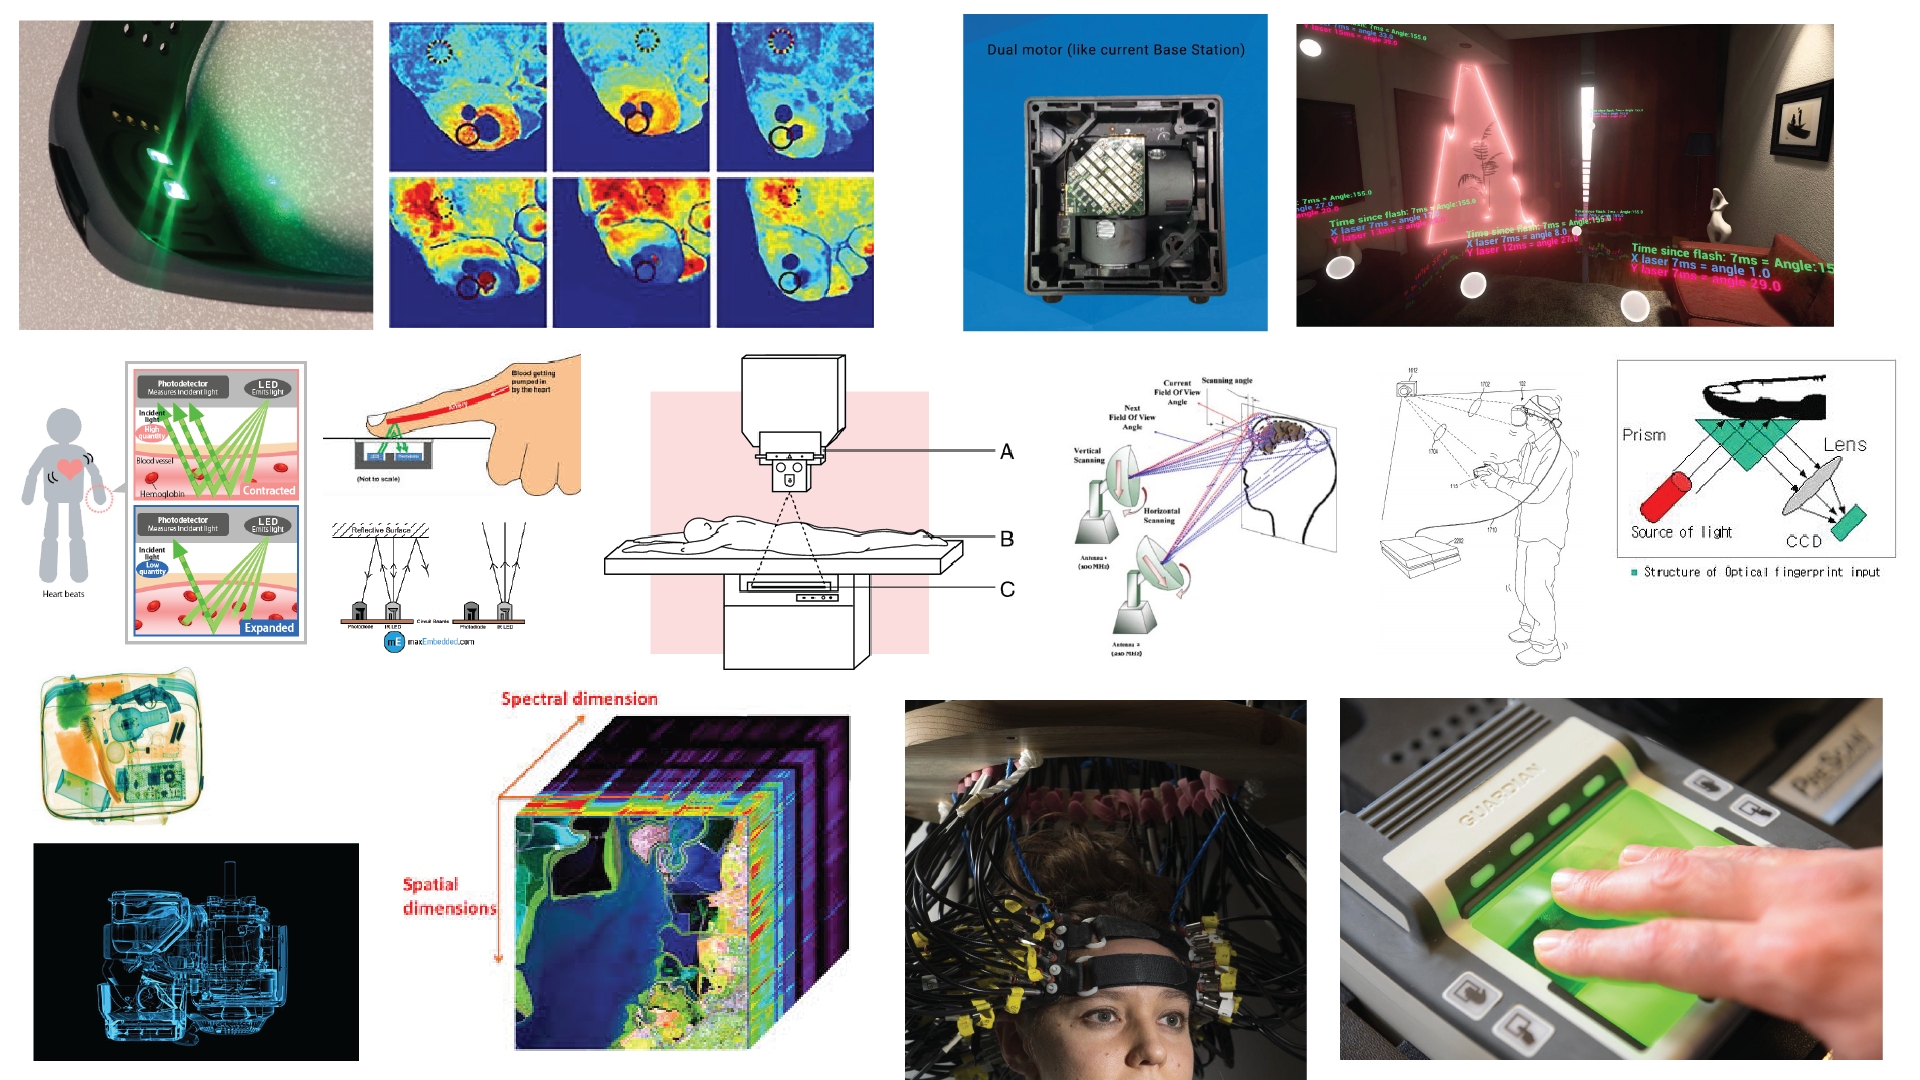 Mood board of imaging system diagrams, scanned imagery as well as scanning equipment